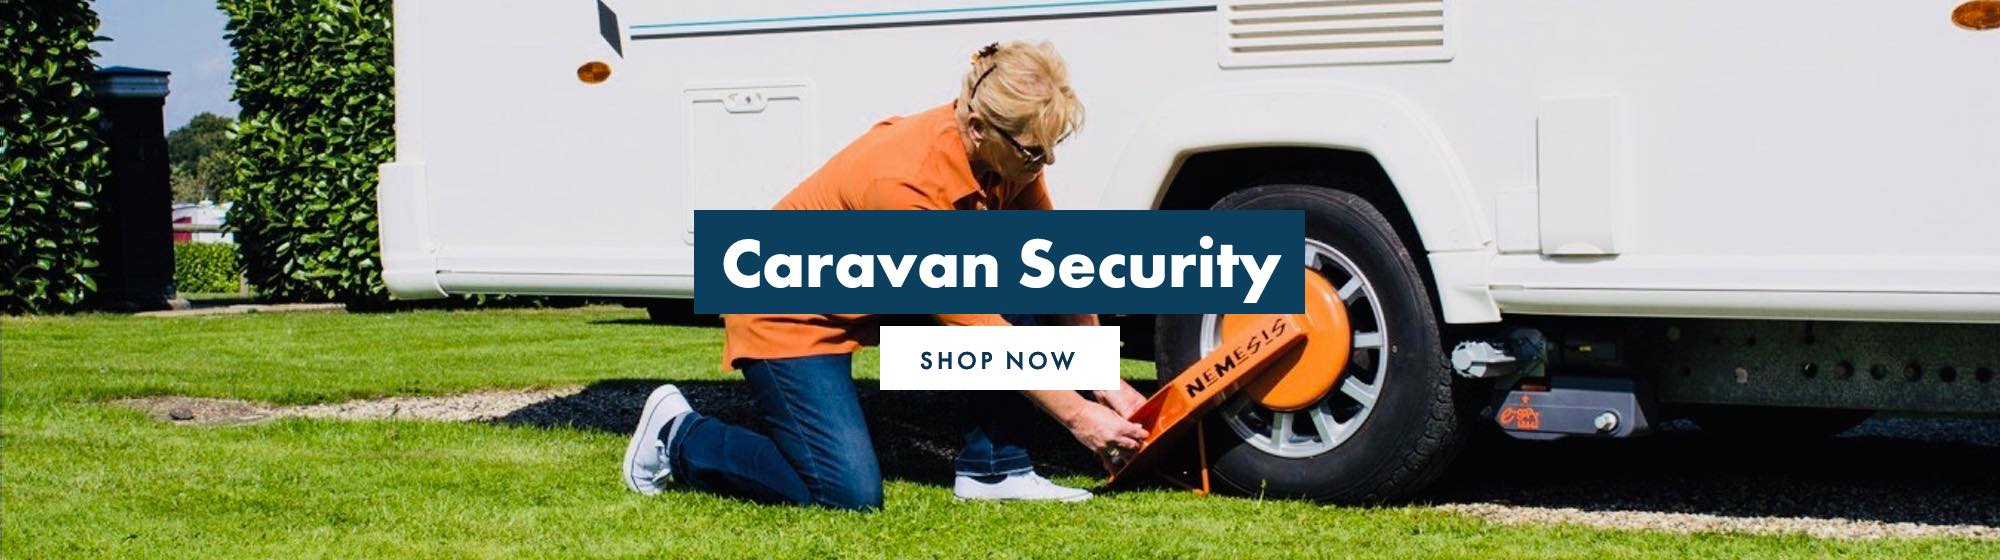 Caravan Security